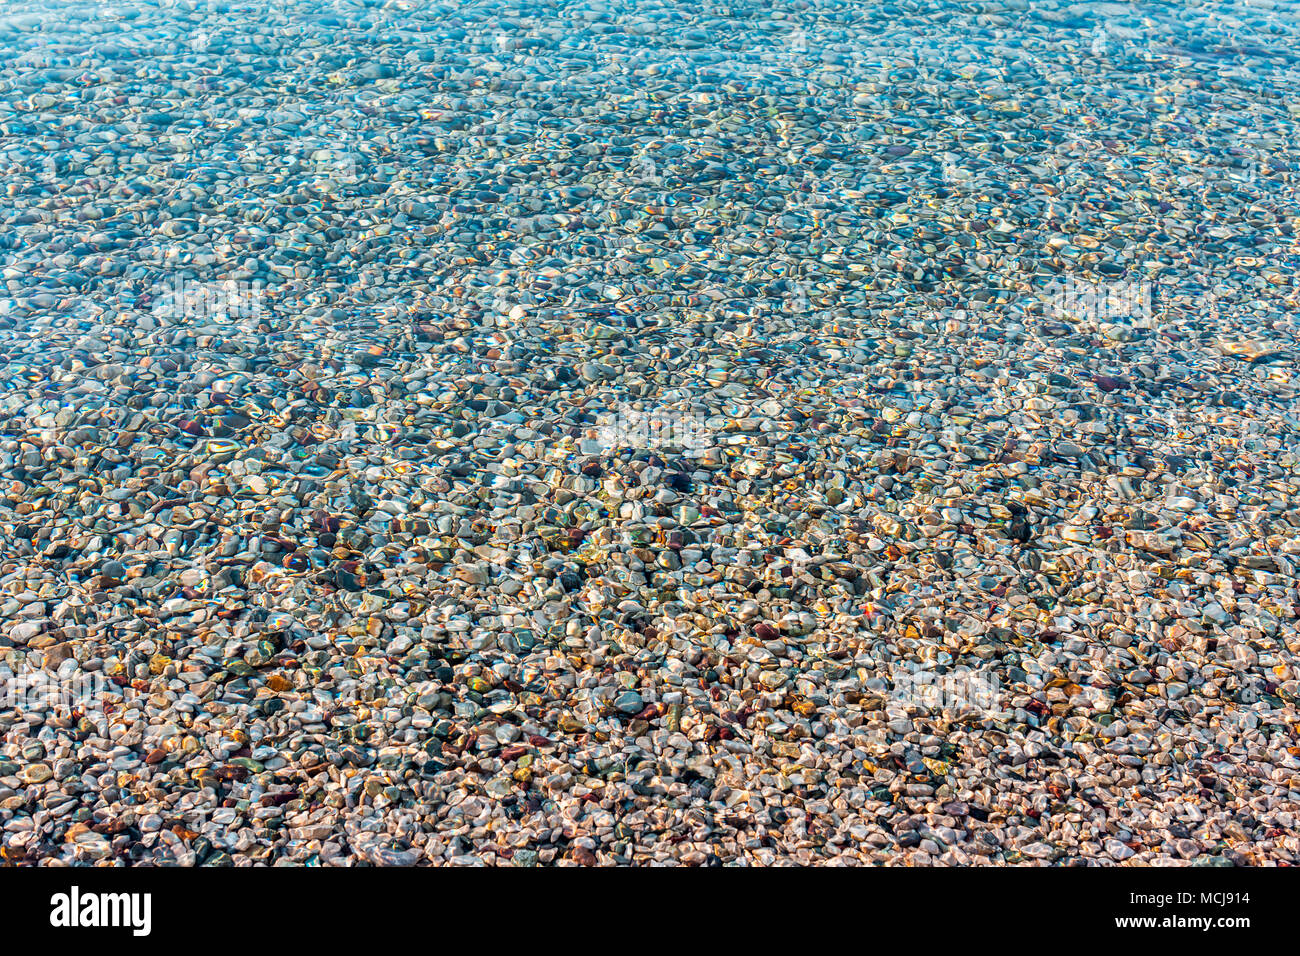 Background Of Blurred Bright Colorful Sea Stones Under Water Iridescent Sunlight On The Transparent Clear